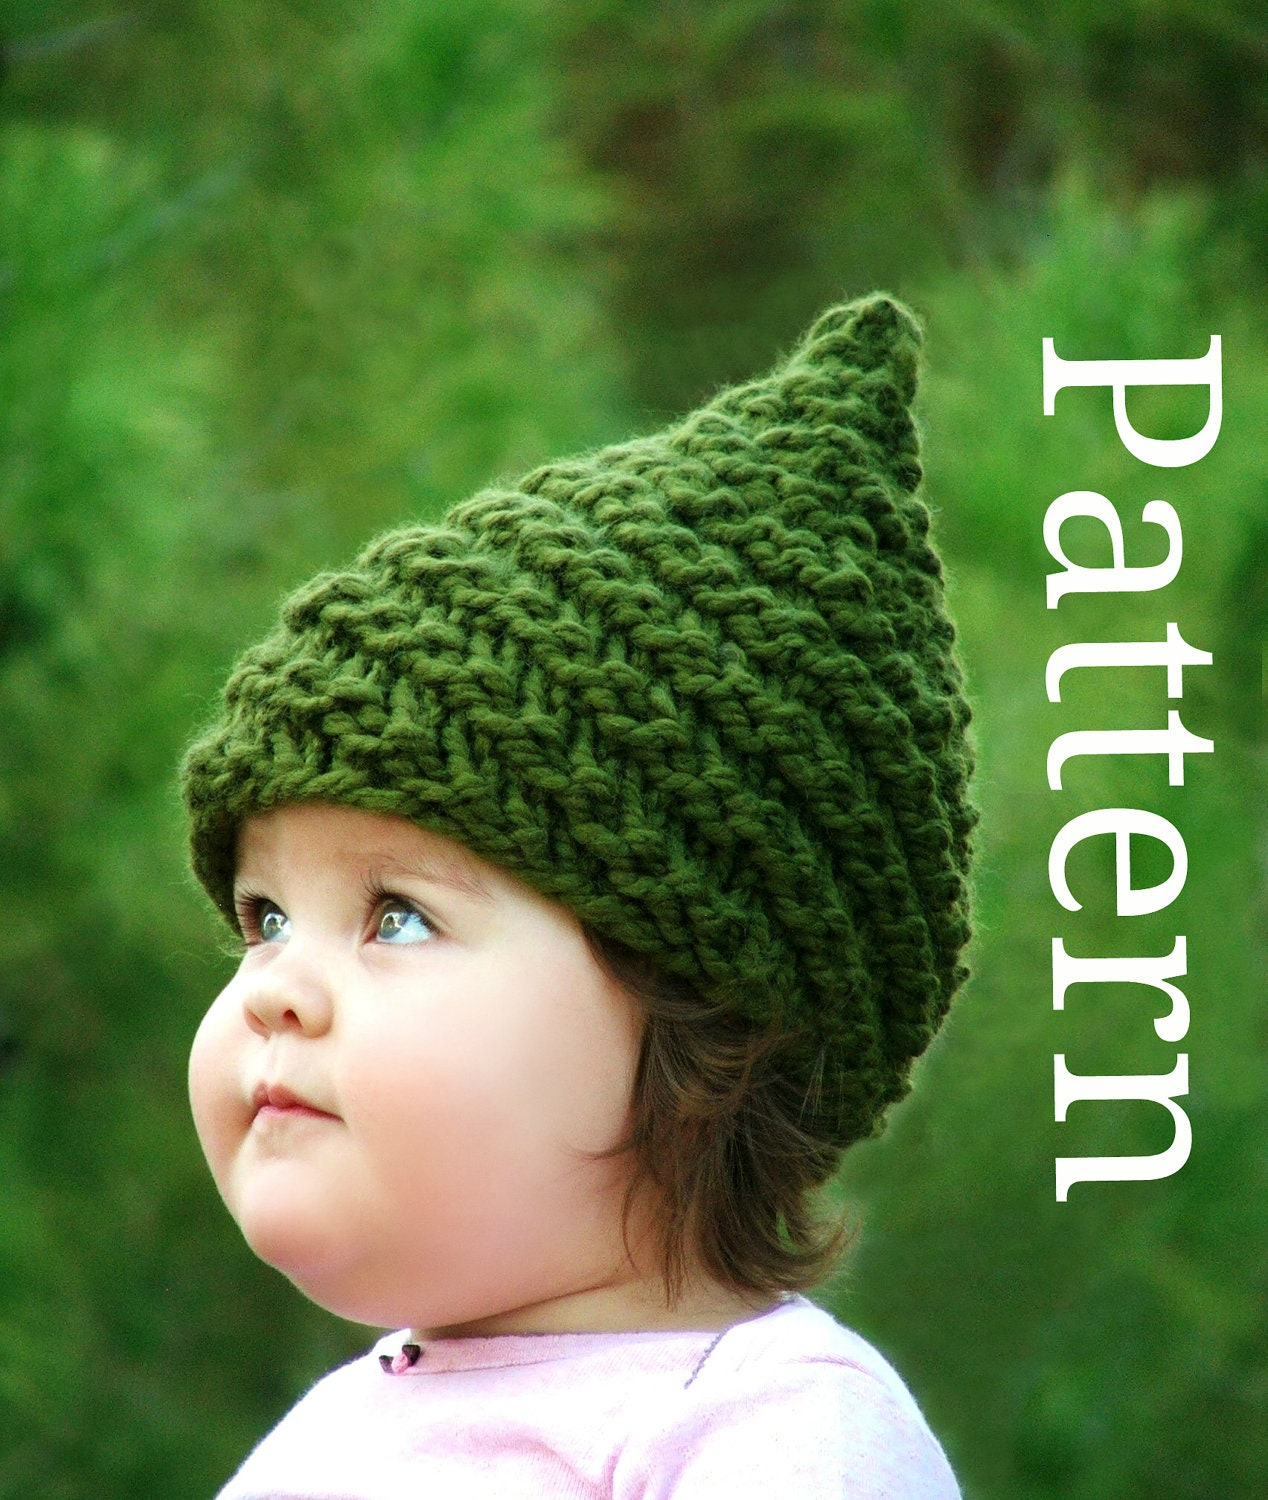 Knitting Patterns For Baby Elf Hats : 301 Moved Permanently